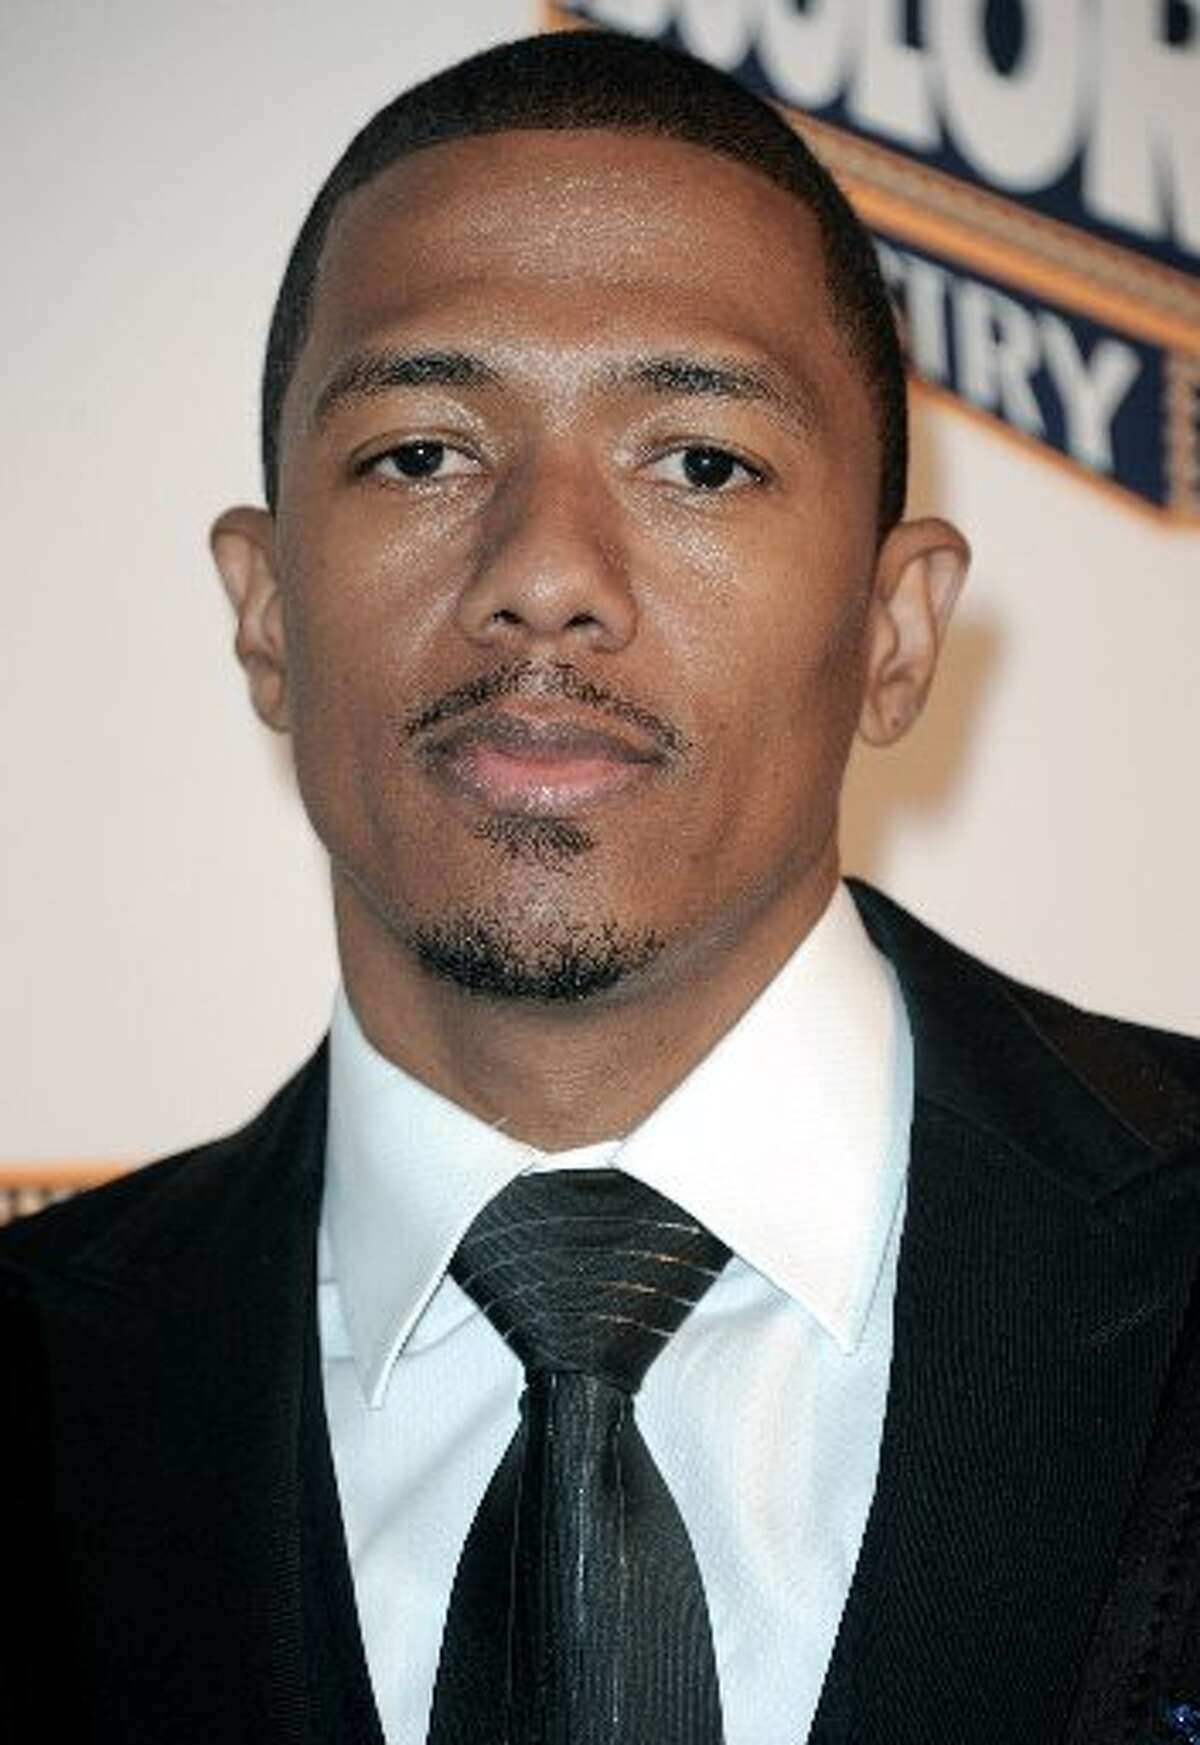 Nick Cannon starred in